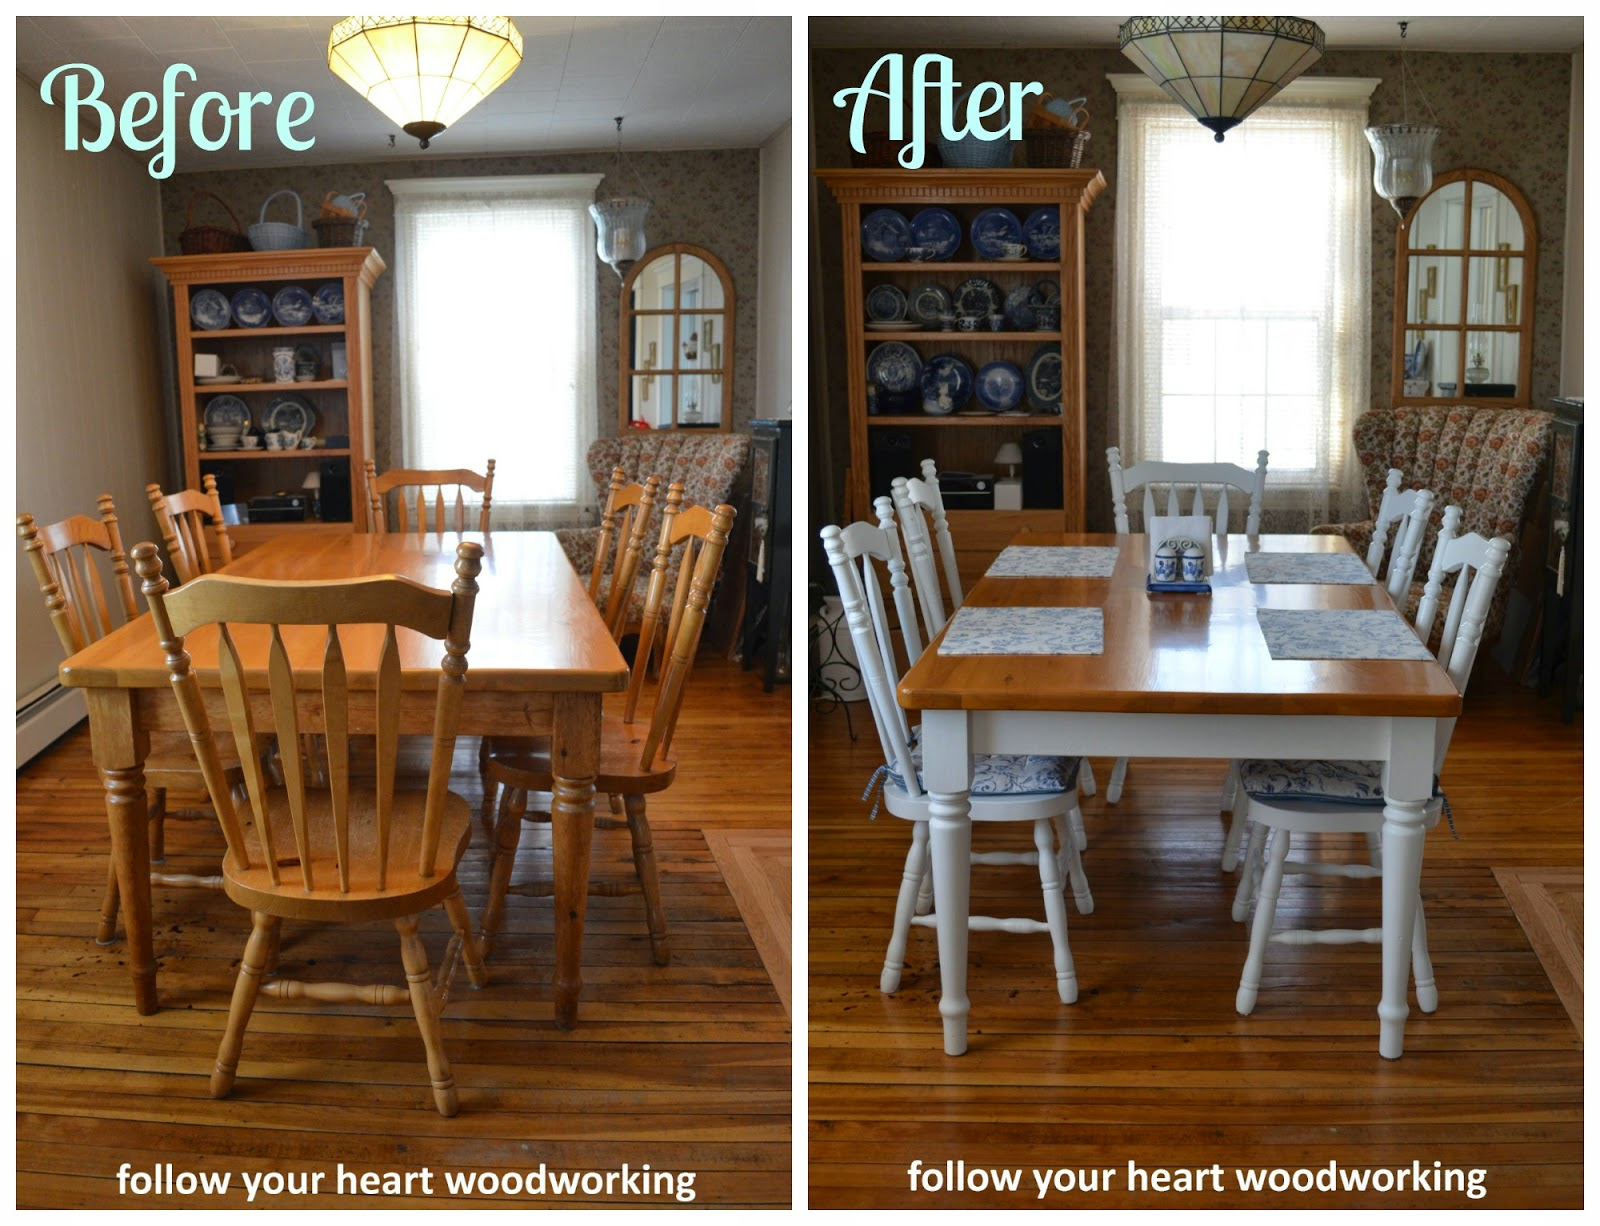 Diy paint dining room table - Wednesday April 8 2015